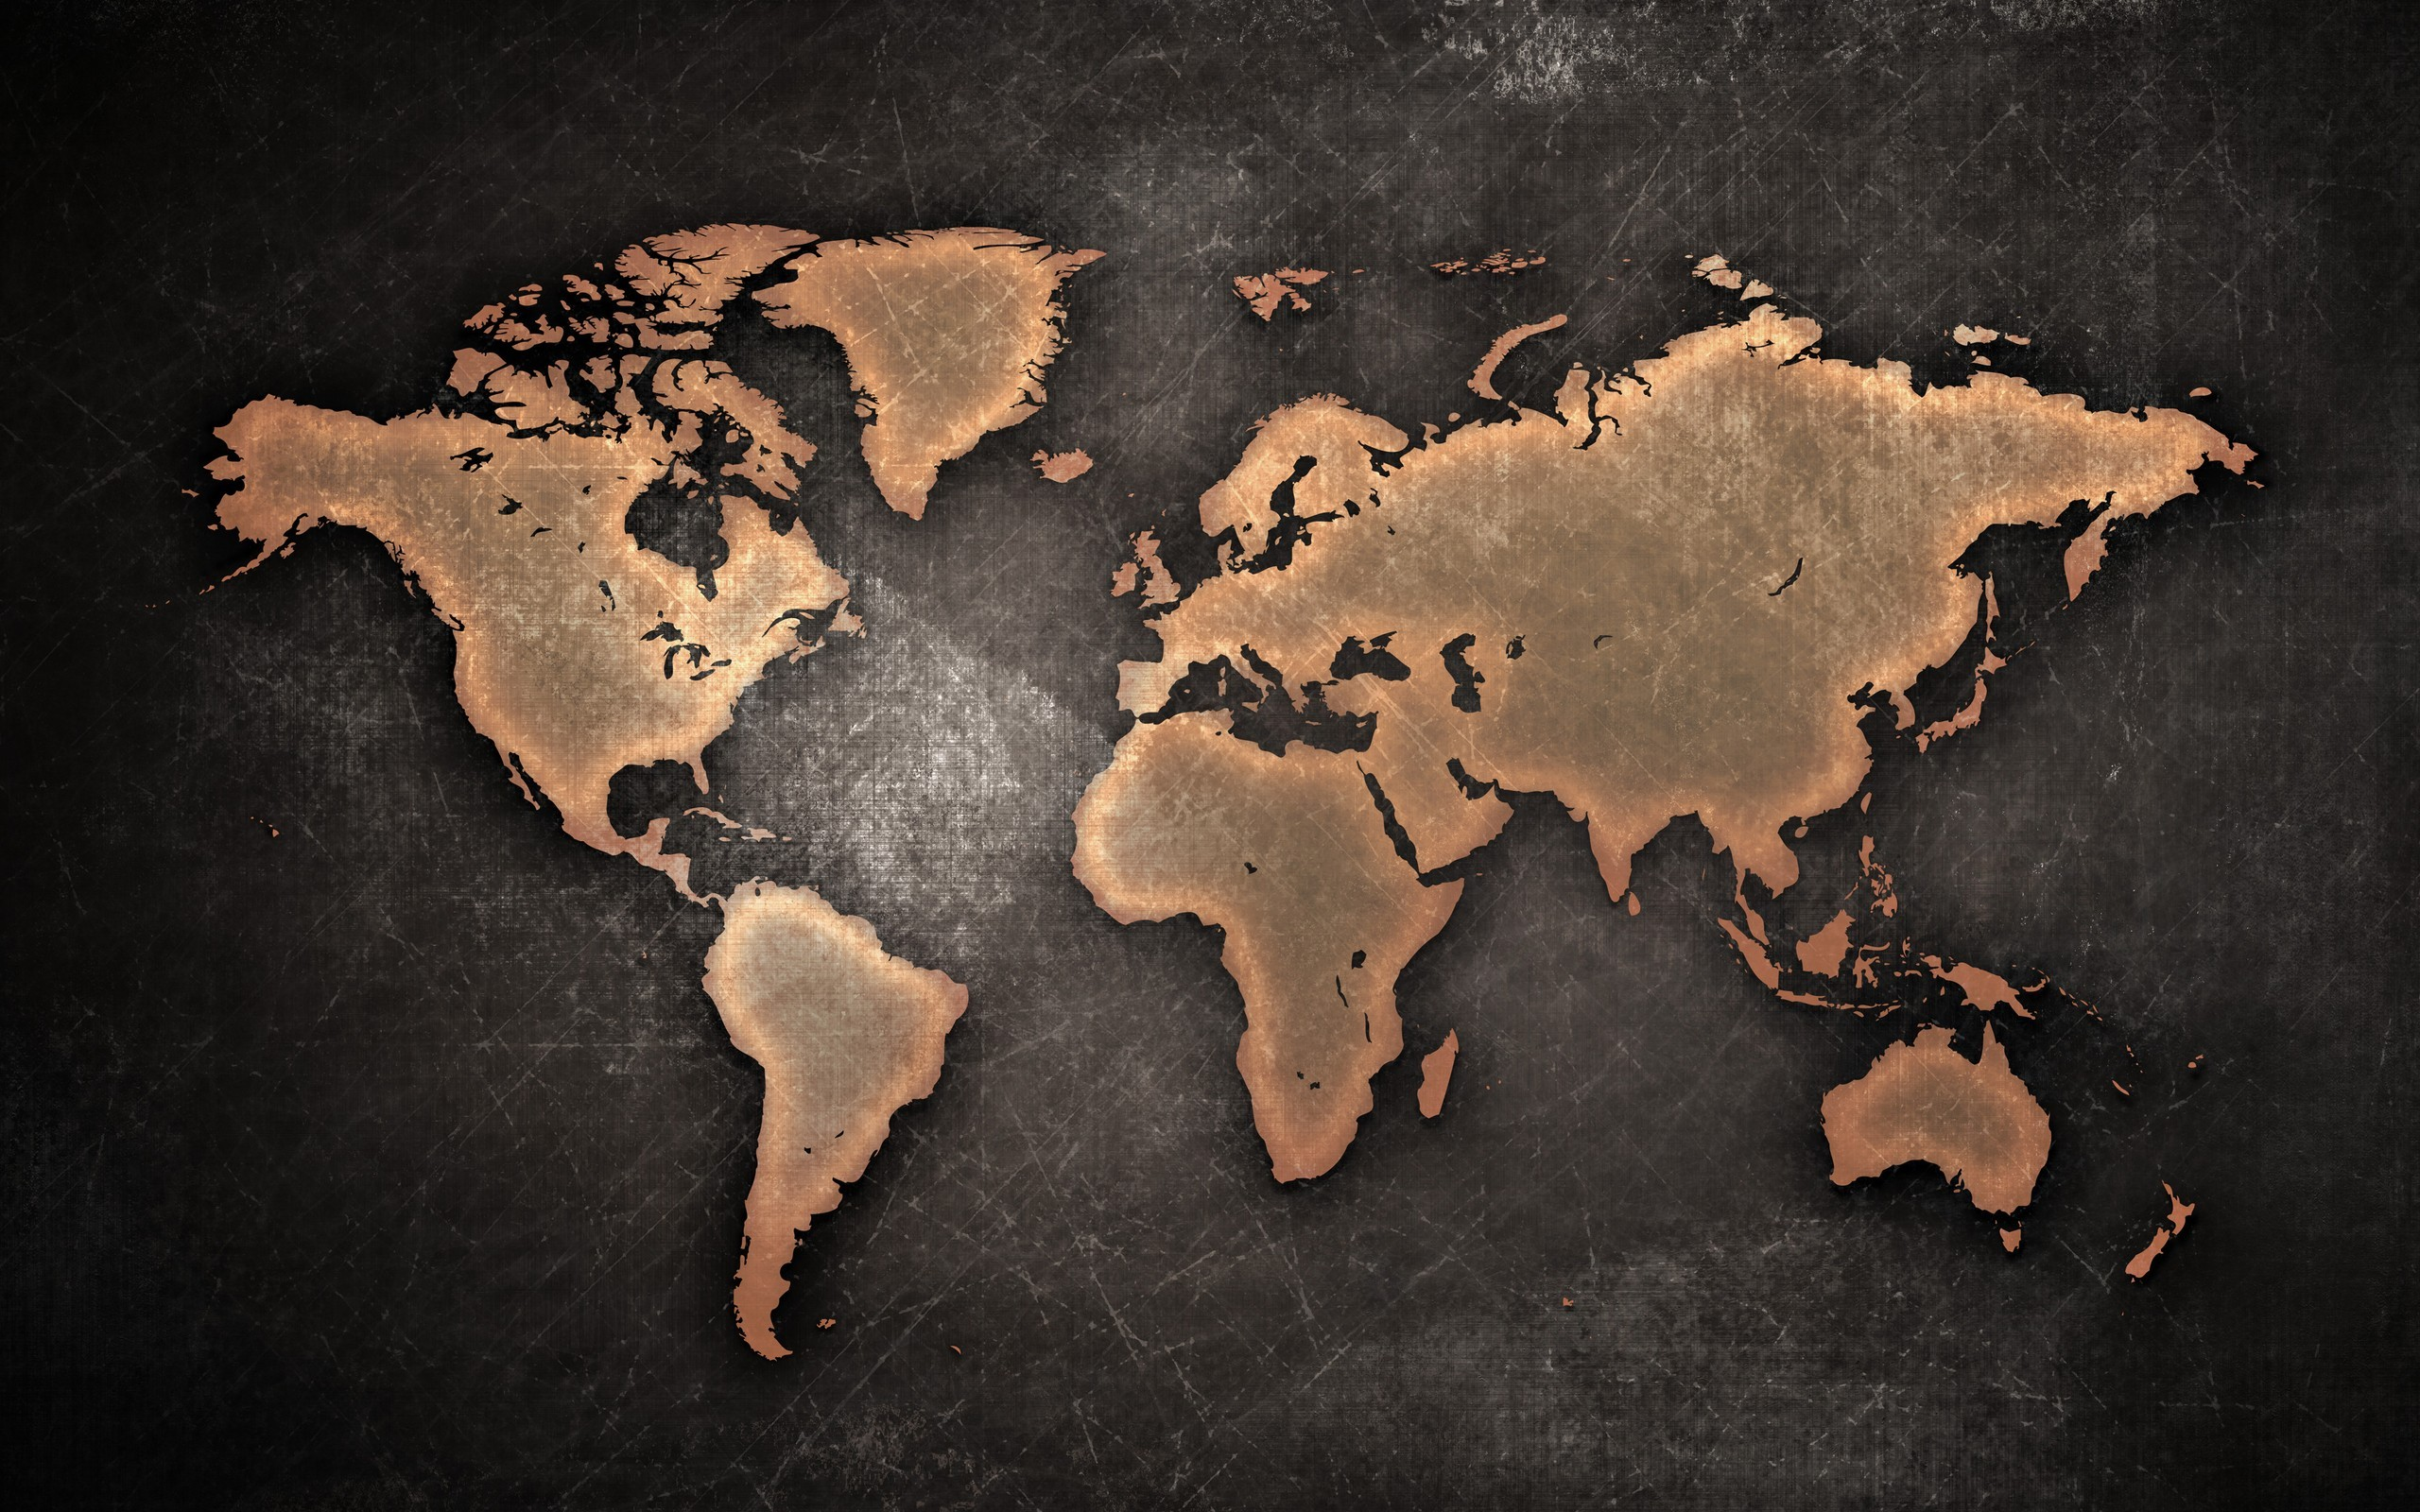 World map wallpaper 6238 2560x1600 px hdwallsource world map wallpaper 6238 sciox Image collections